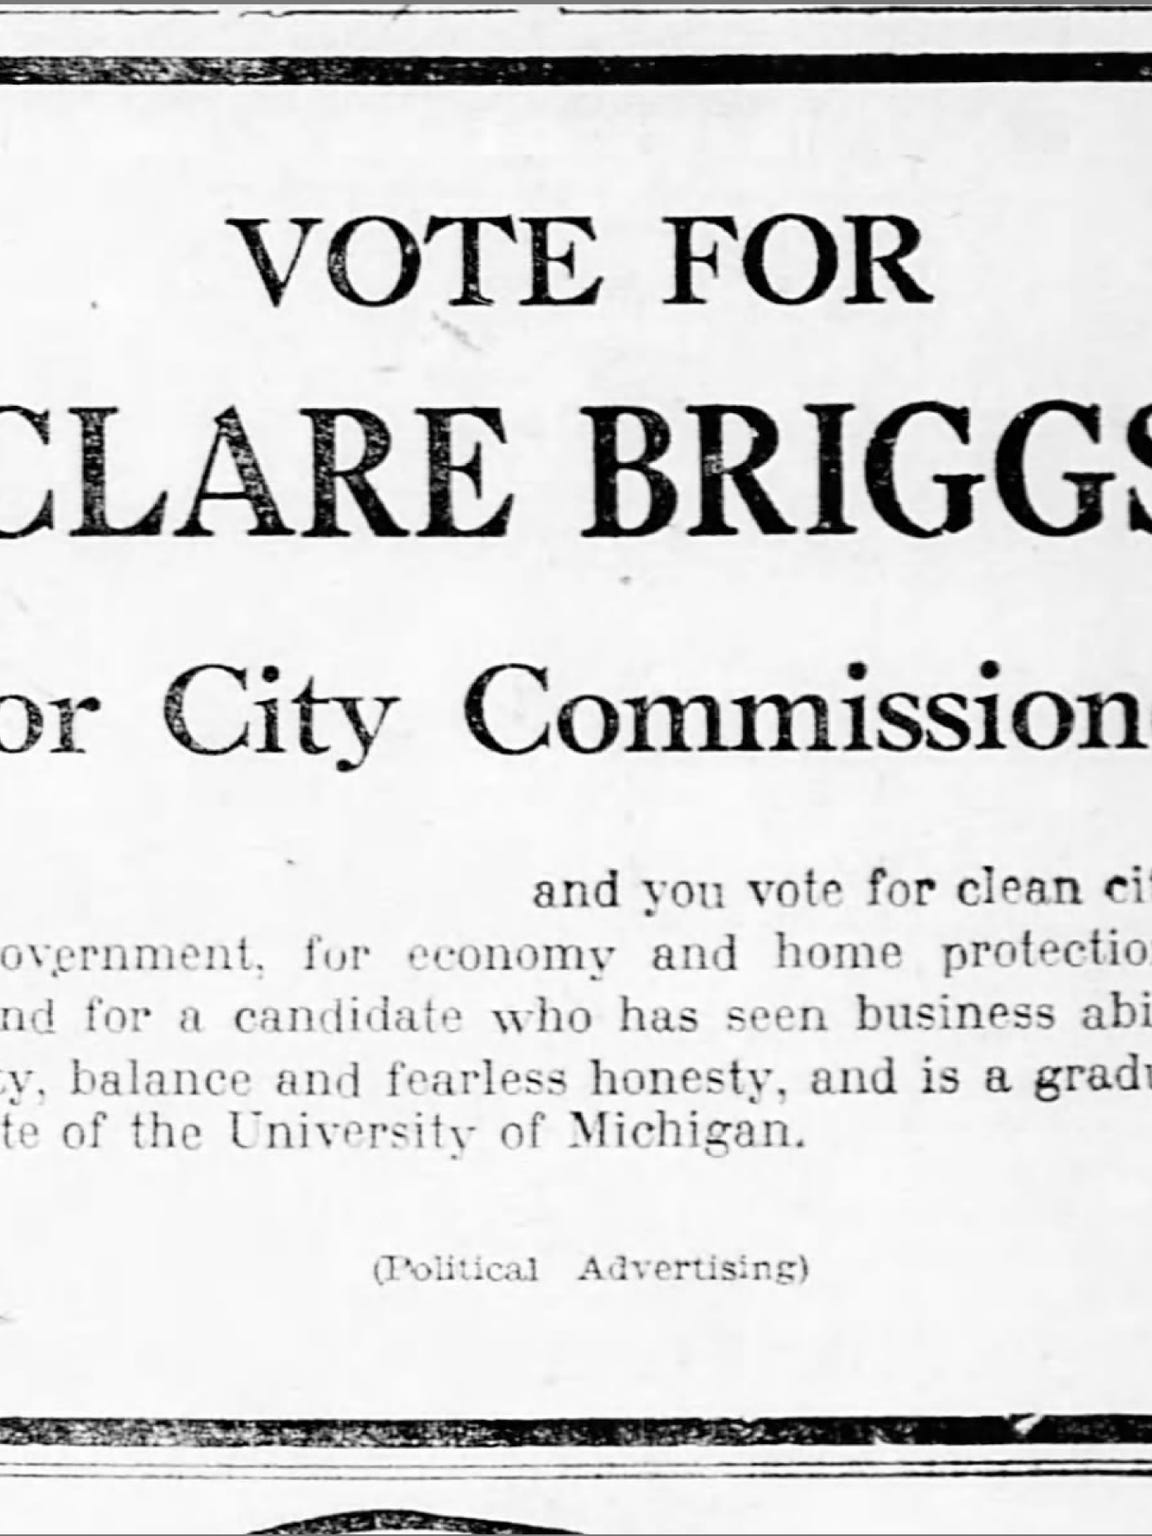 A political advertisement published in a March 1925